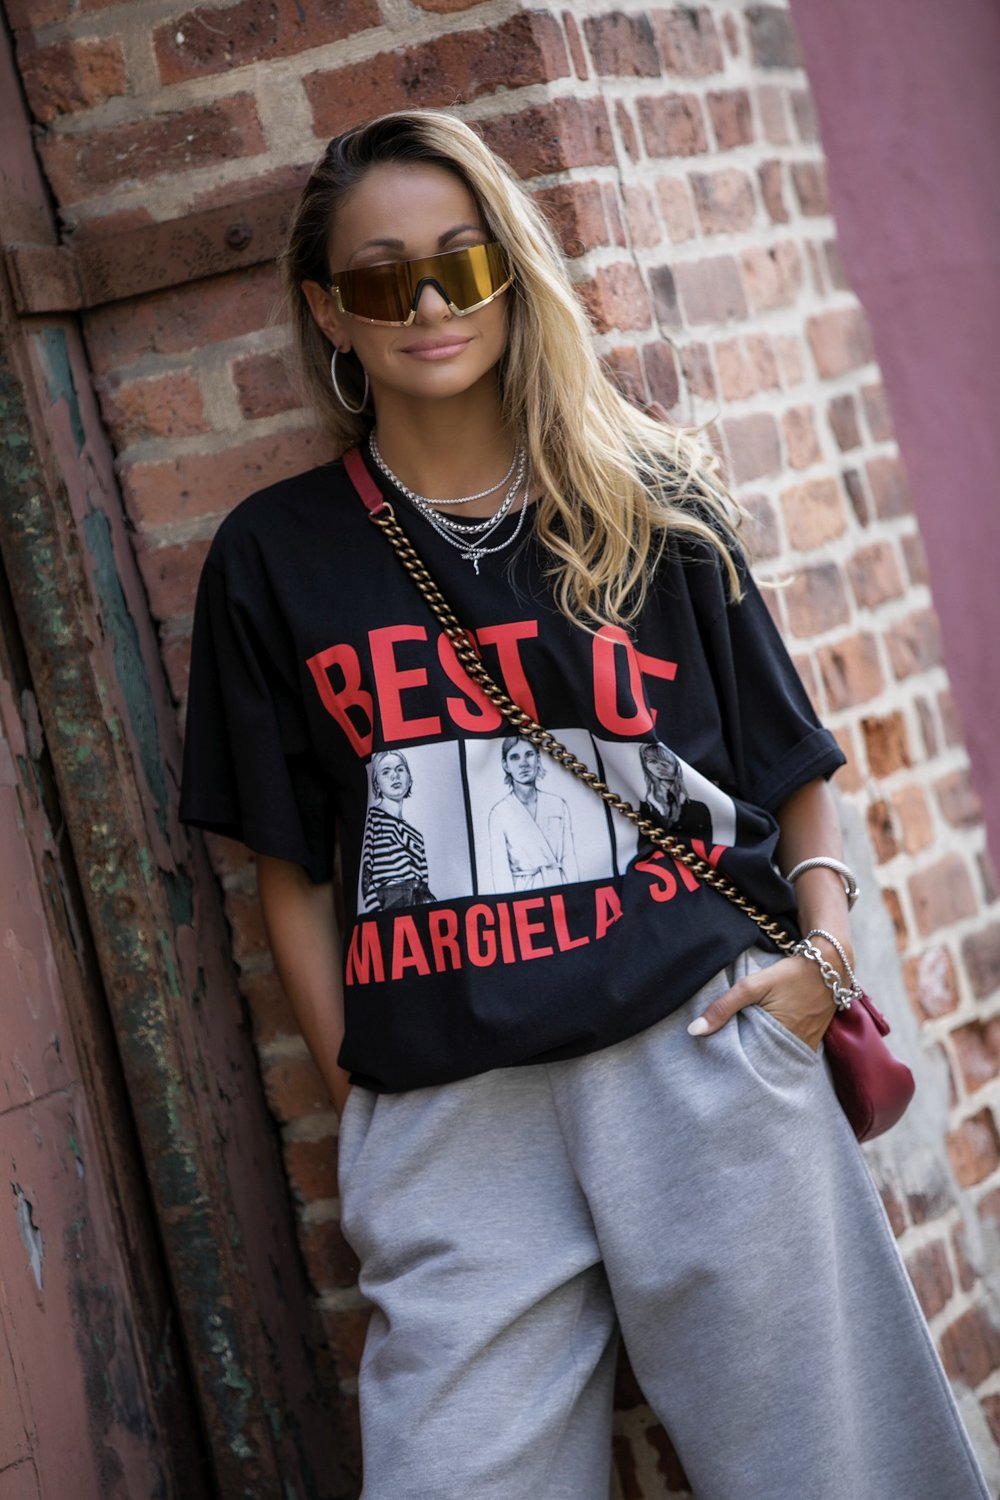 westward leaning sunglasses, MM6 oversized tee and sweatpants, and David Yurman jewelry on Lauren Recchia